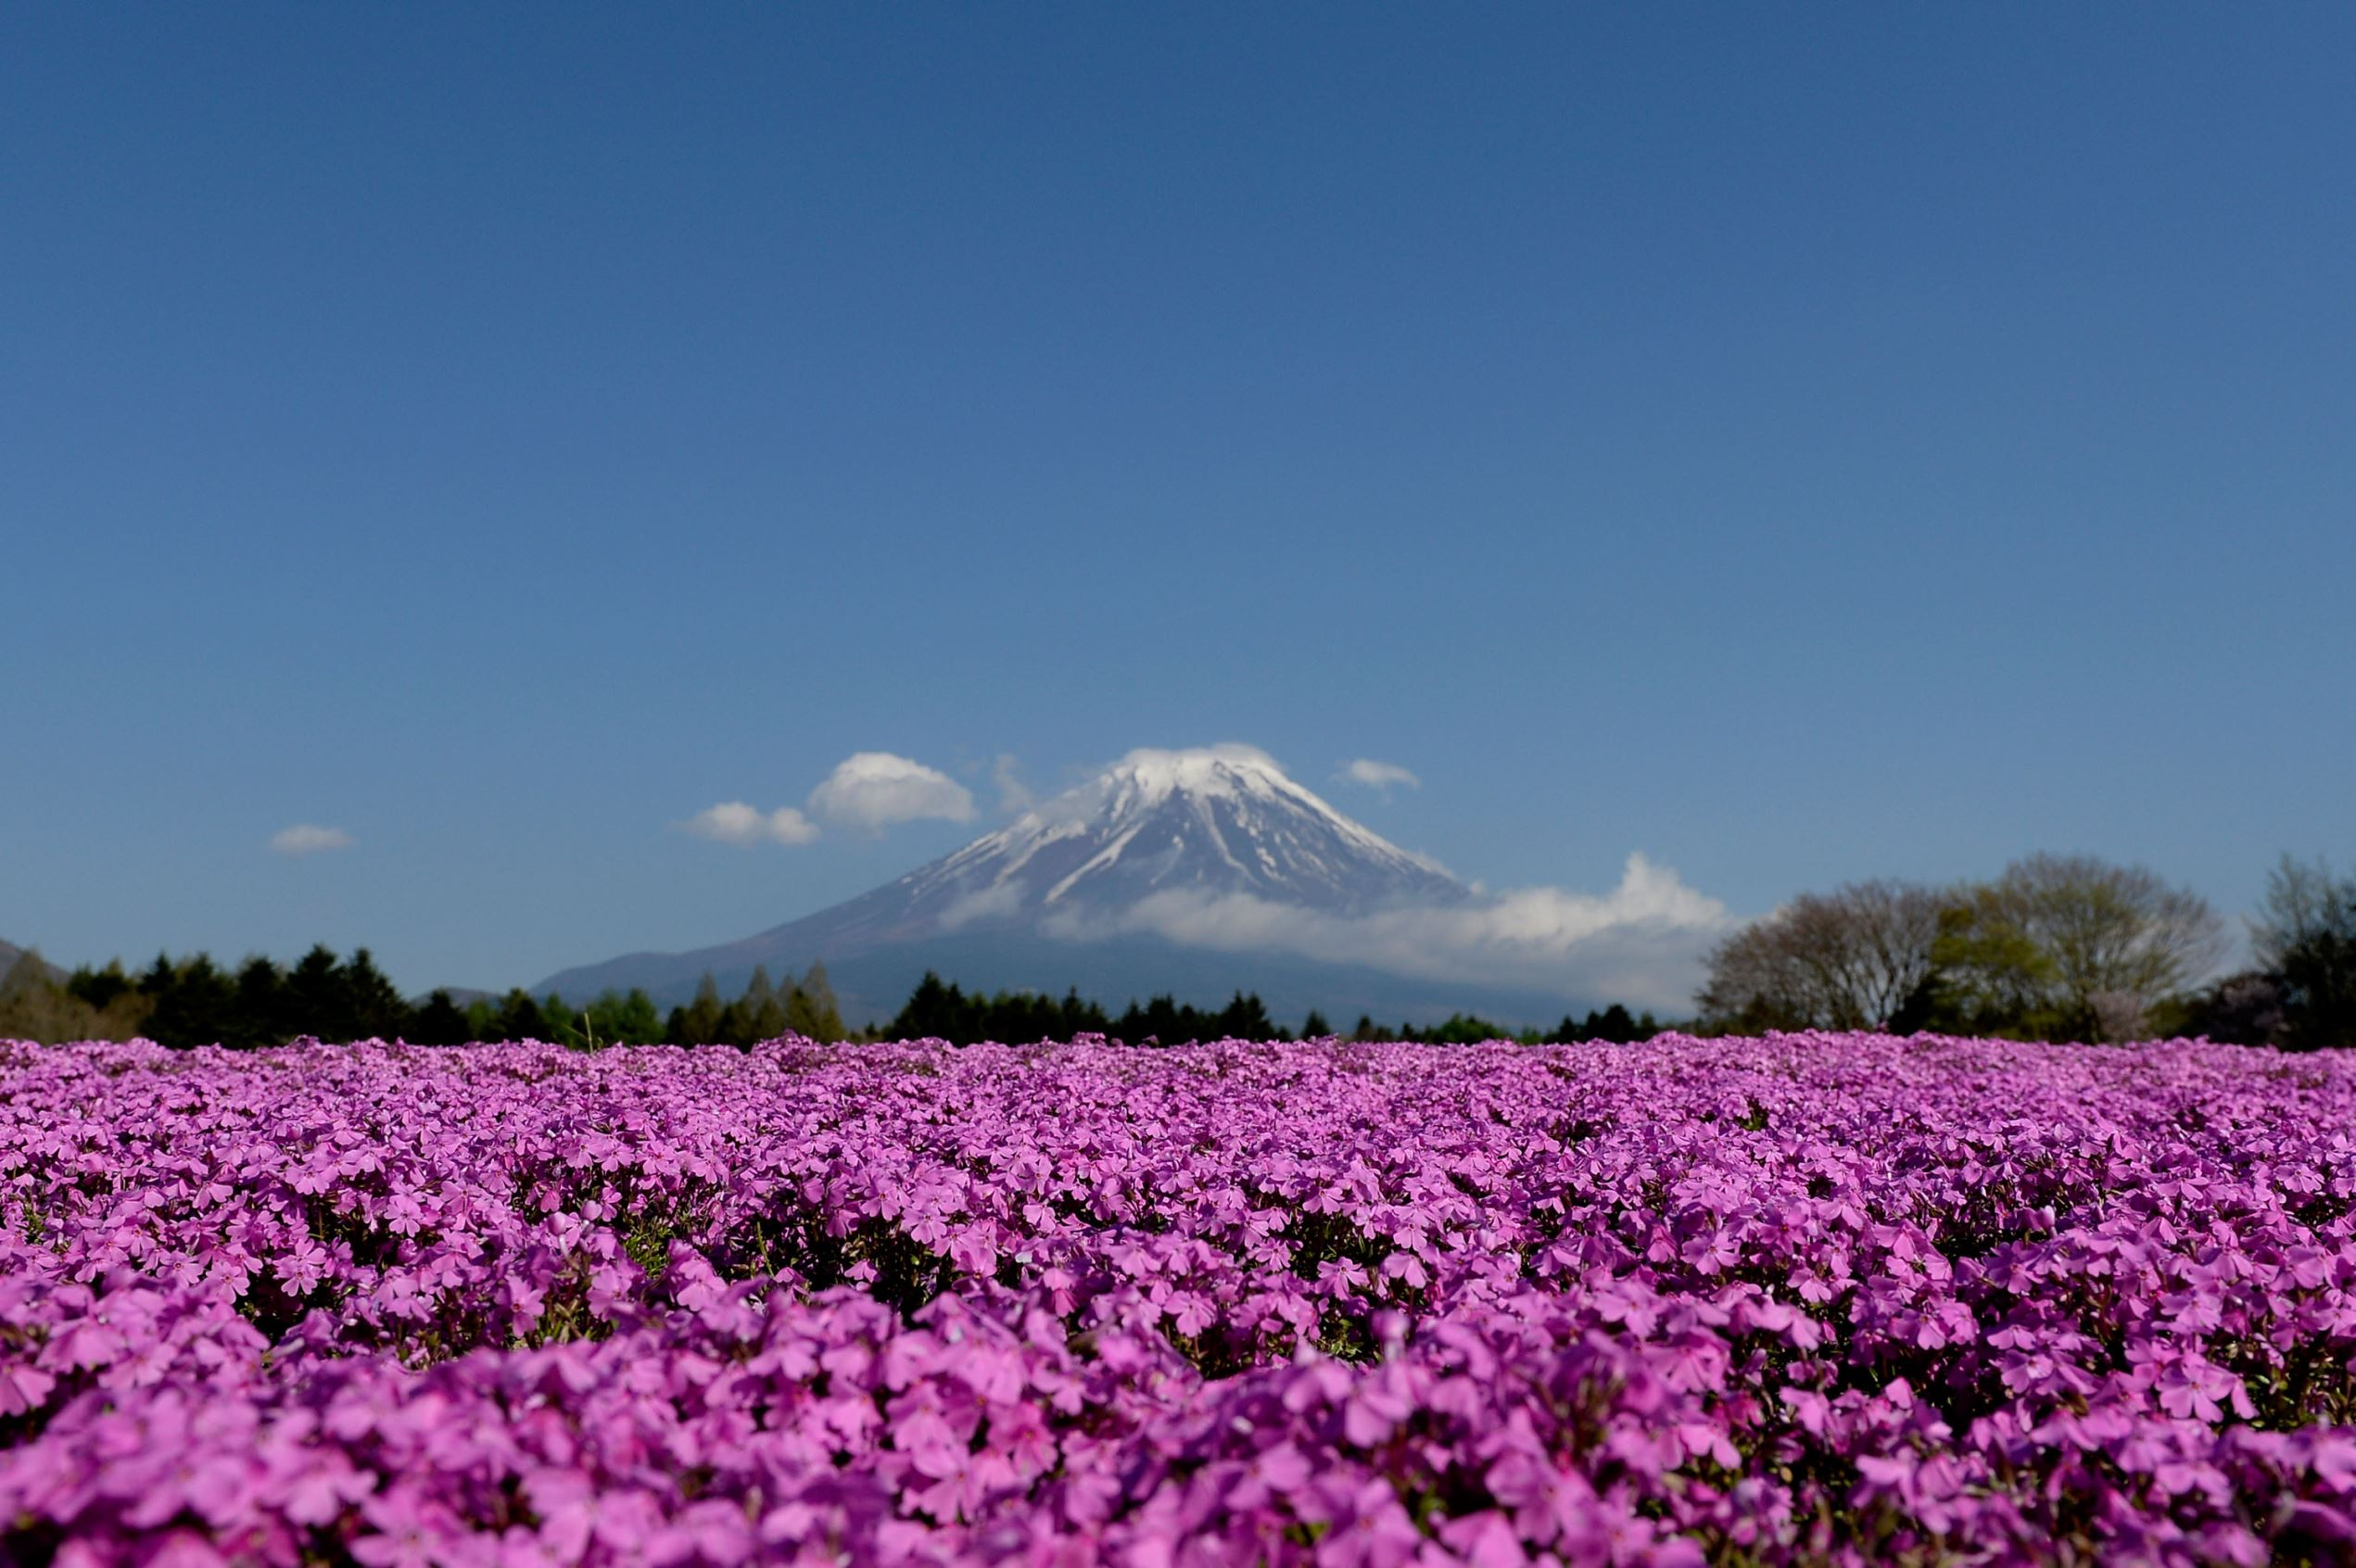 Слайд 42 из 86: FUJIKAWAGUCHIKO, JAPAN - APRIL 30:  Shibazakura (Moss phlox) bloom in front of the Mt.Fuji during the Fuji Shibazakura Festival at Ryujin-ike Pond on April 30, 2016 in Fujikawaguchiko, Japan. About 800,000 moss phlox flowers are in full bloom at the fest